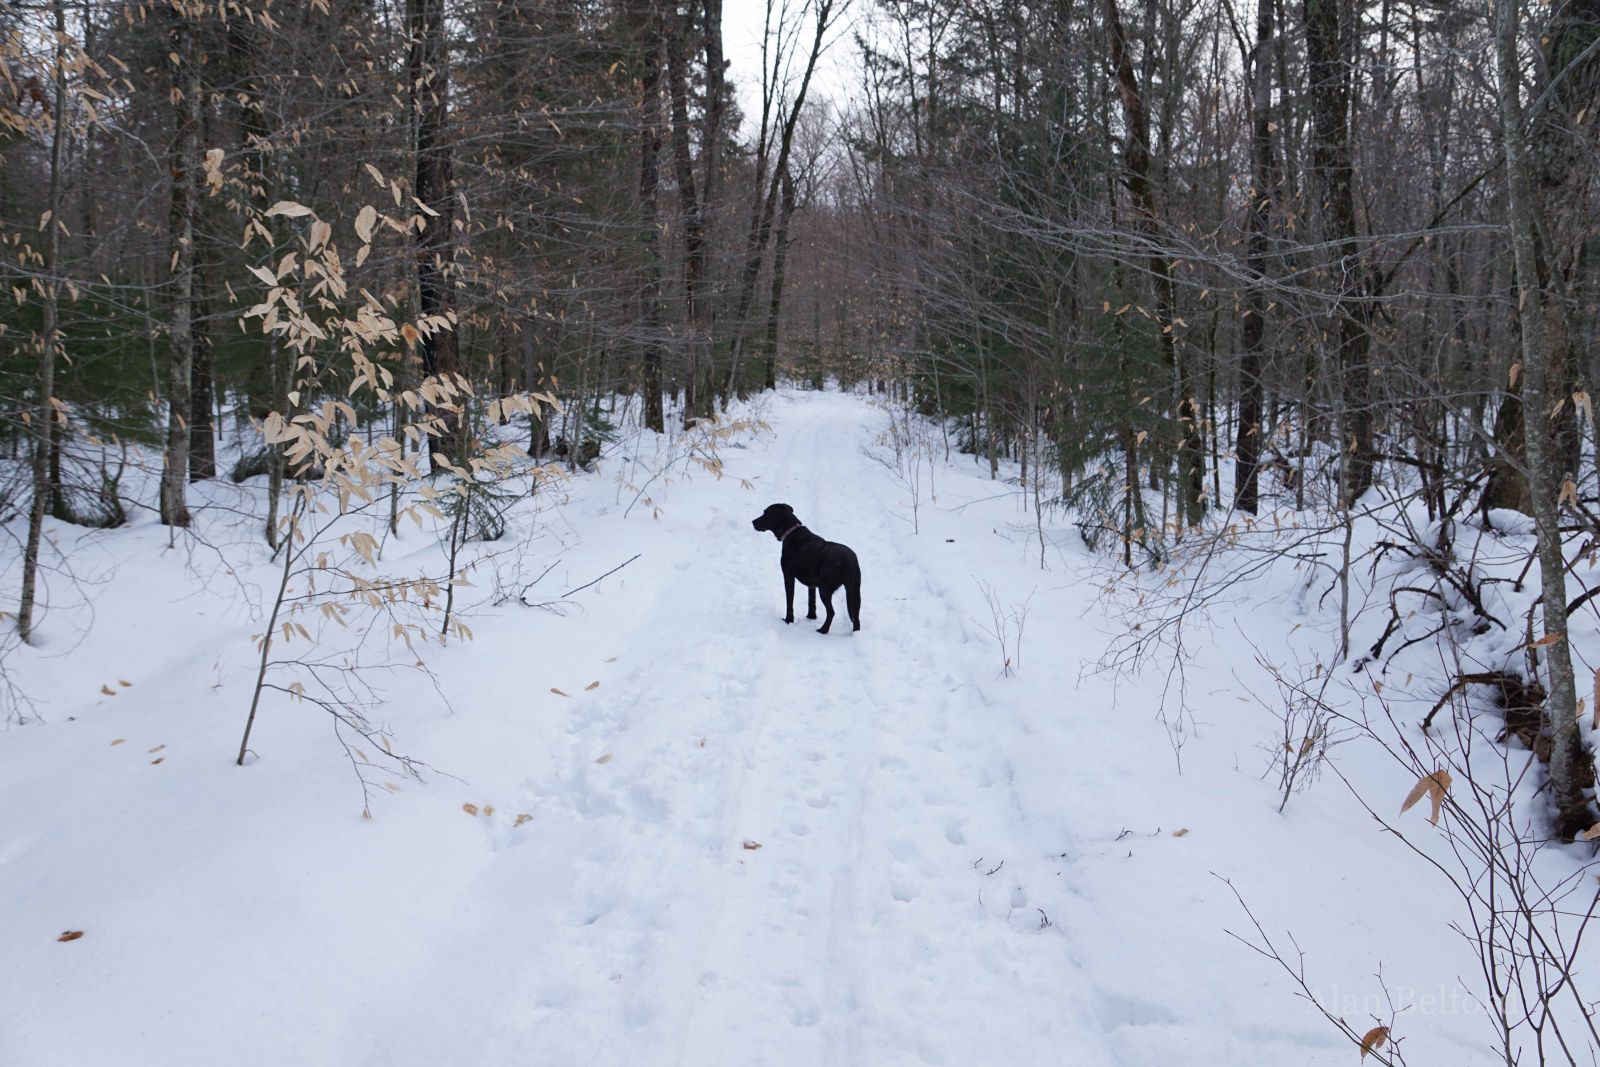 Wren eyes the trail ahead just as we both are anticipating a winter full of snow and skiing adventures.